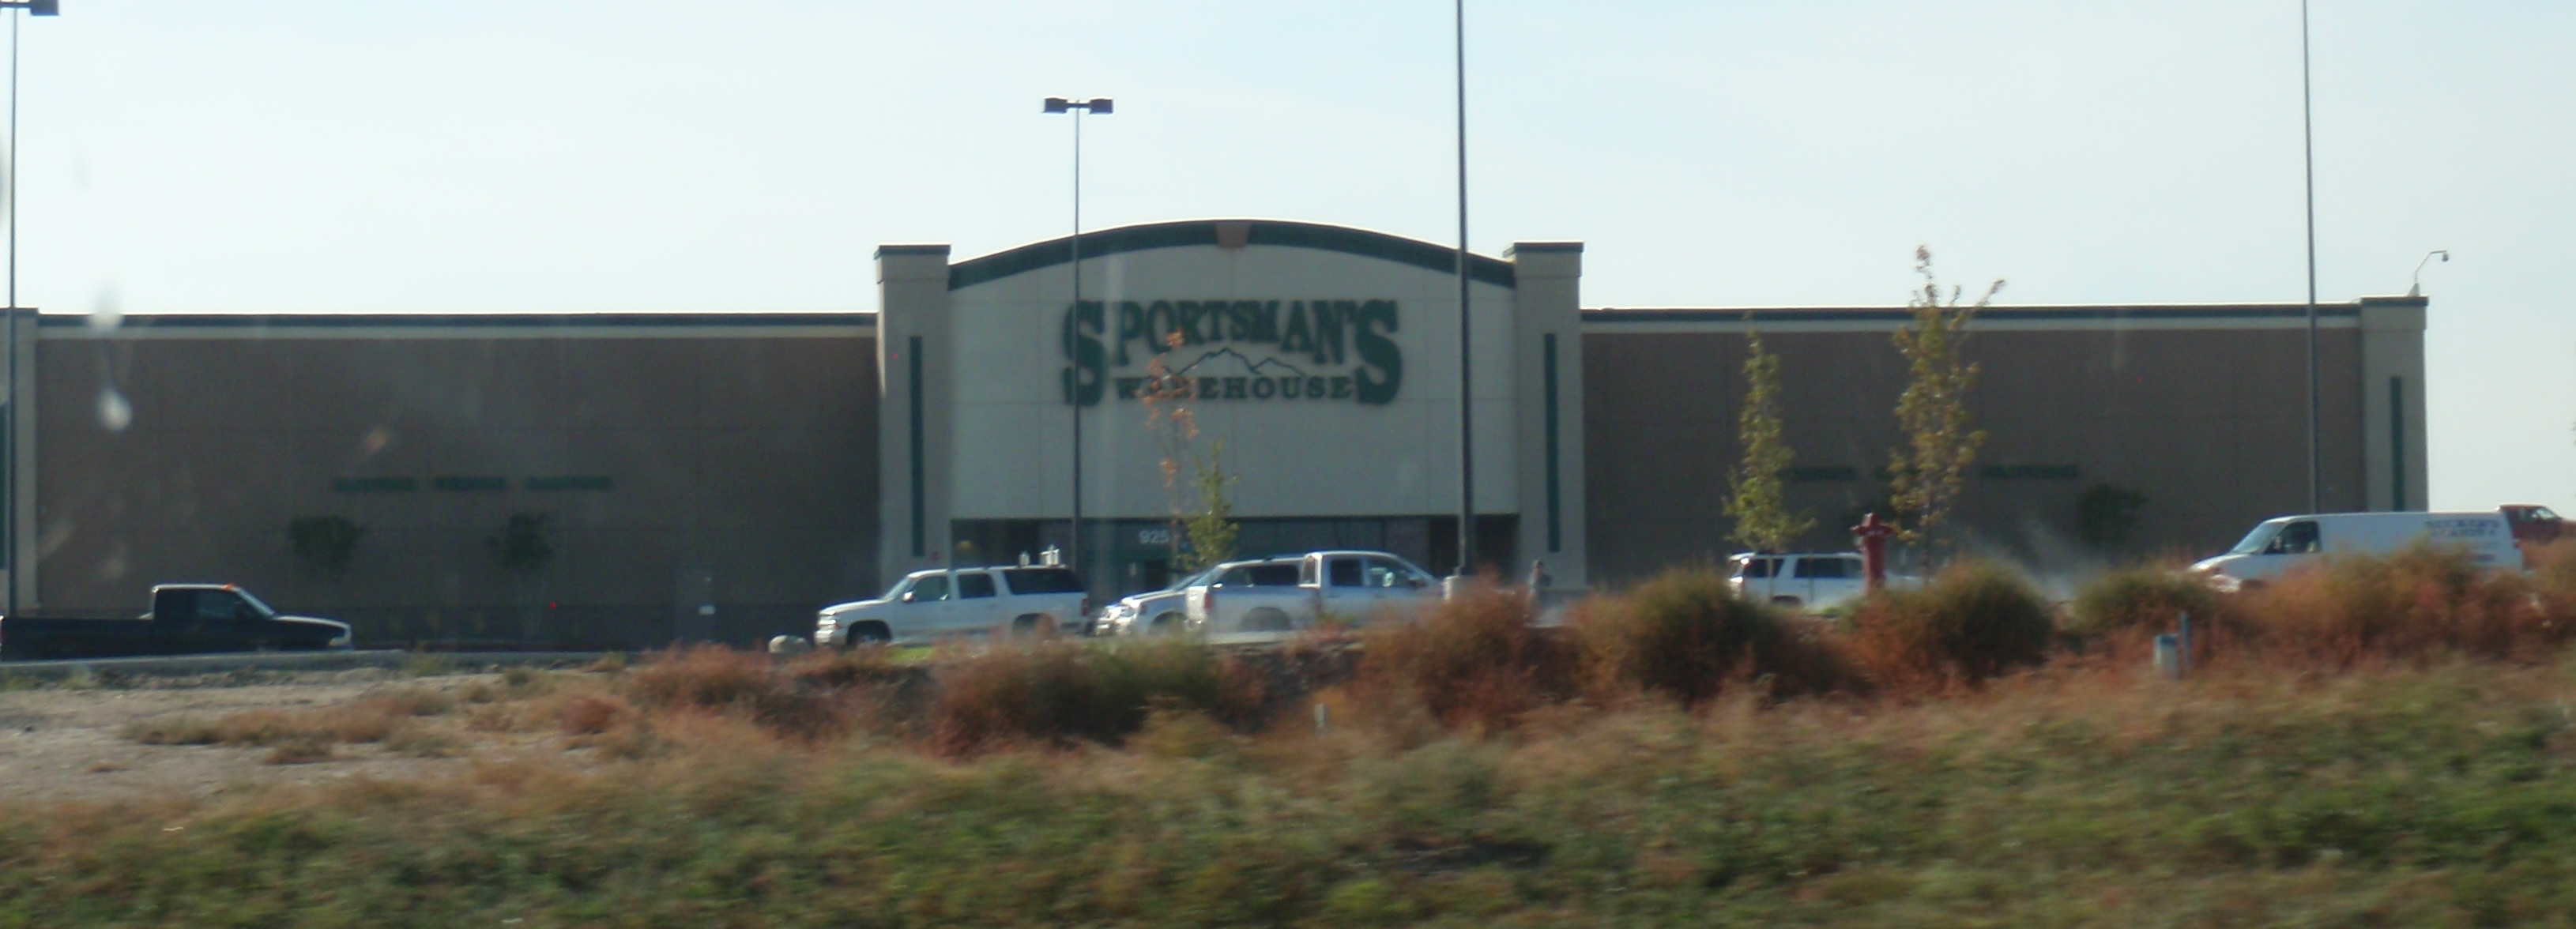 Huge, new Sportsmans' Warehouse store in WIlliston. Huge amount of apartments under construction behind the store. Photo by James Ulvog.